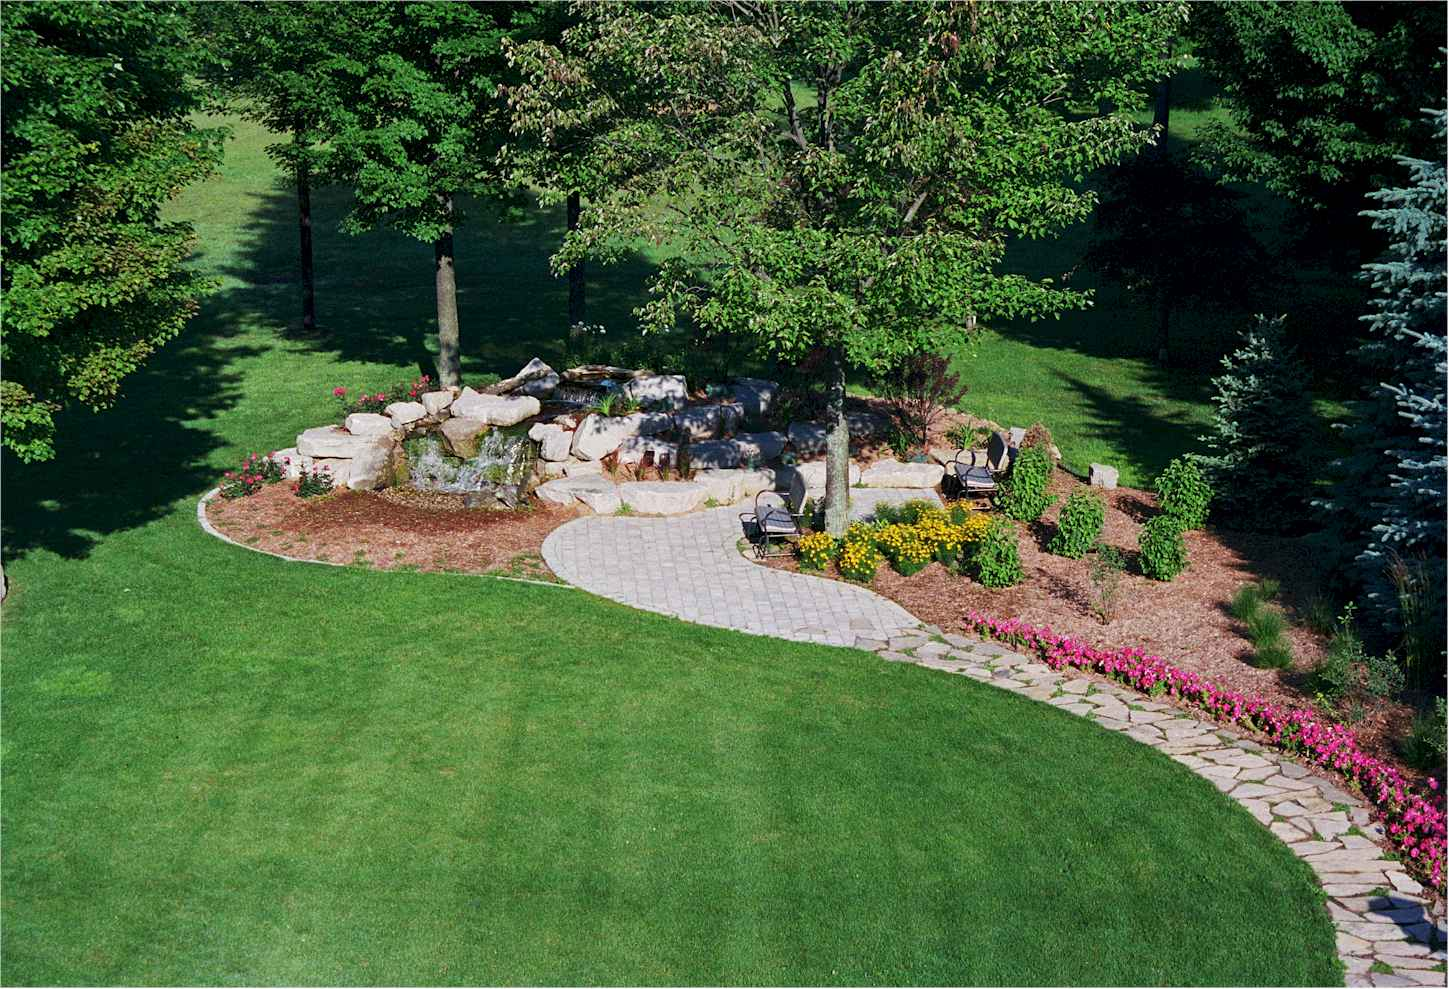 5 landscaping ideas to wow the neighbors for Landscape design ideas